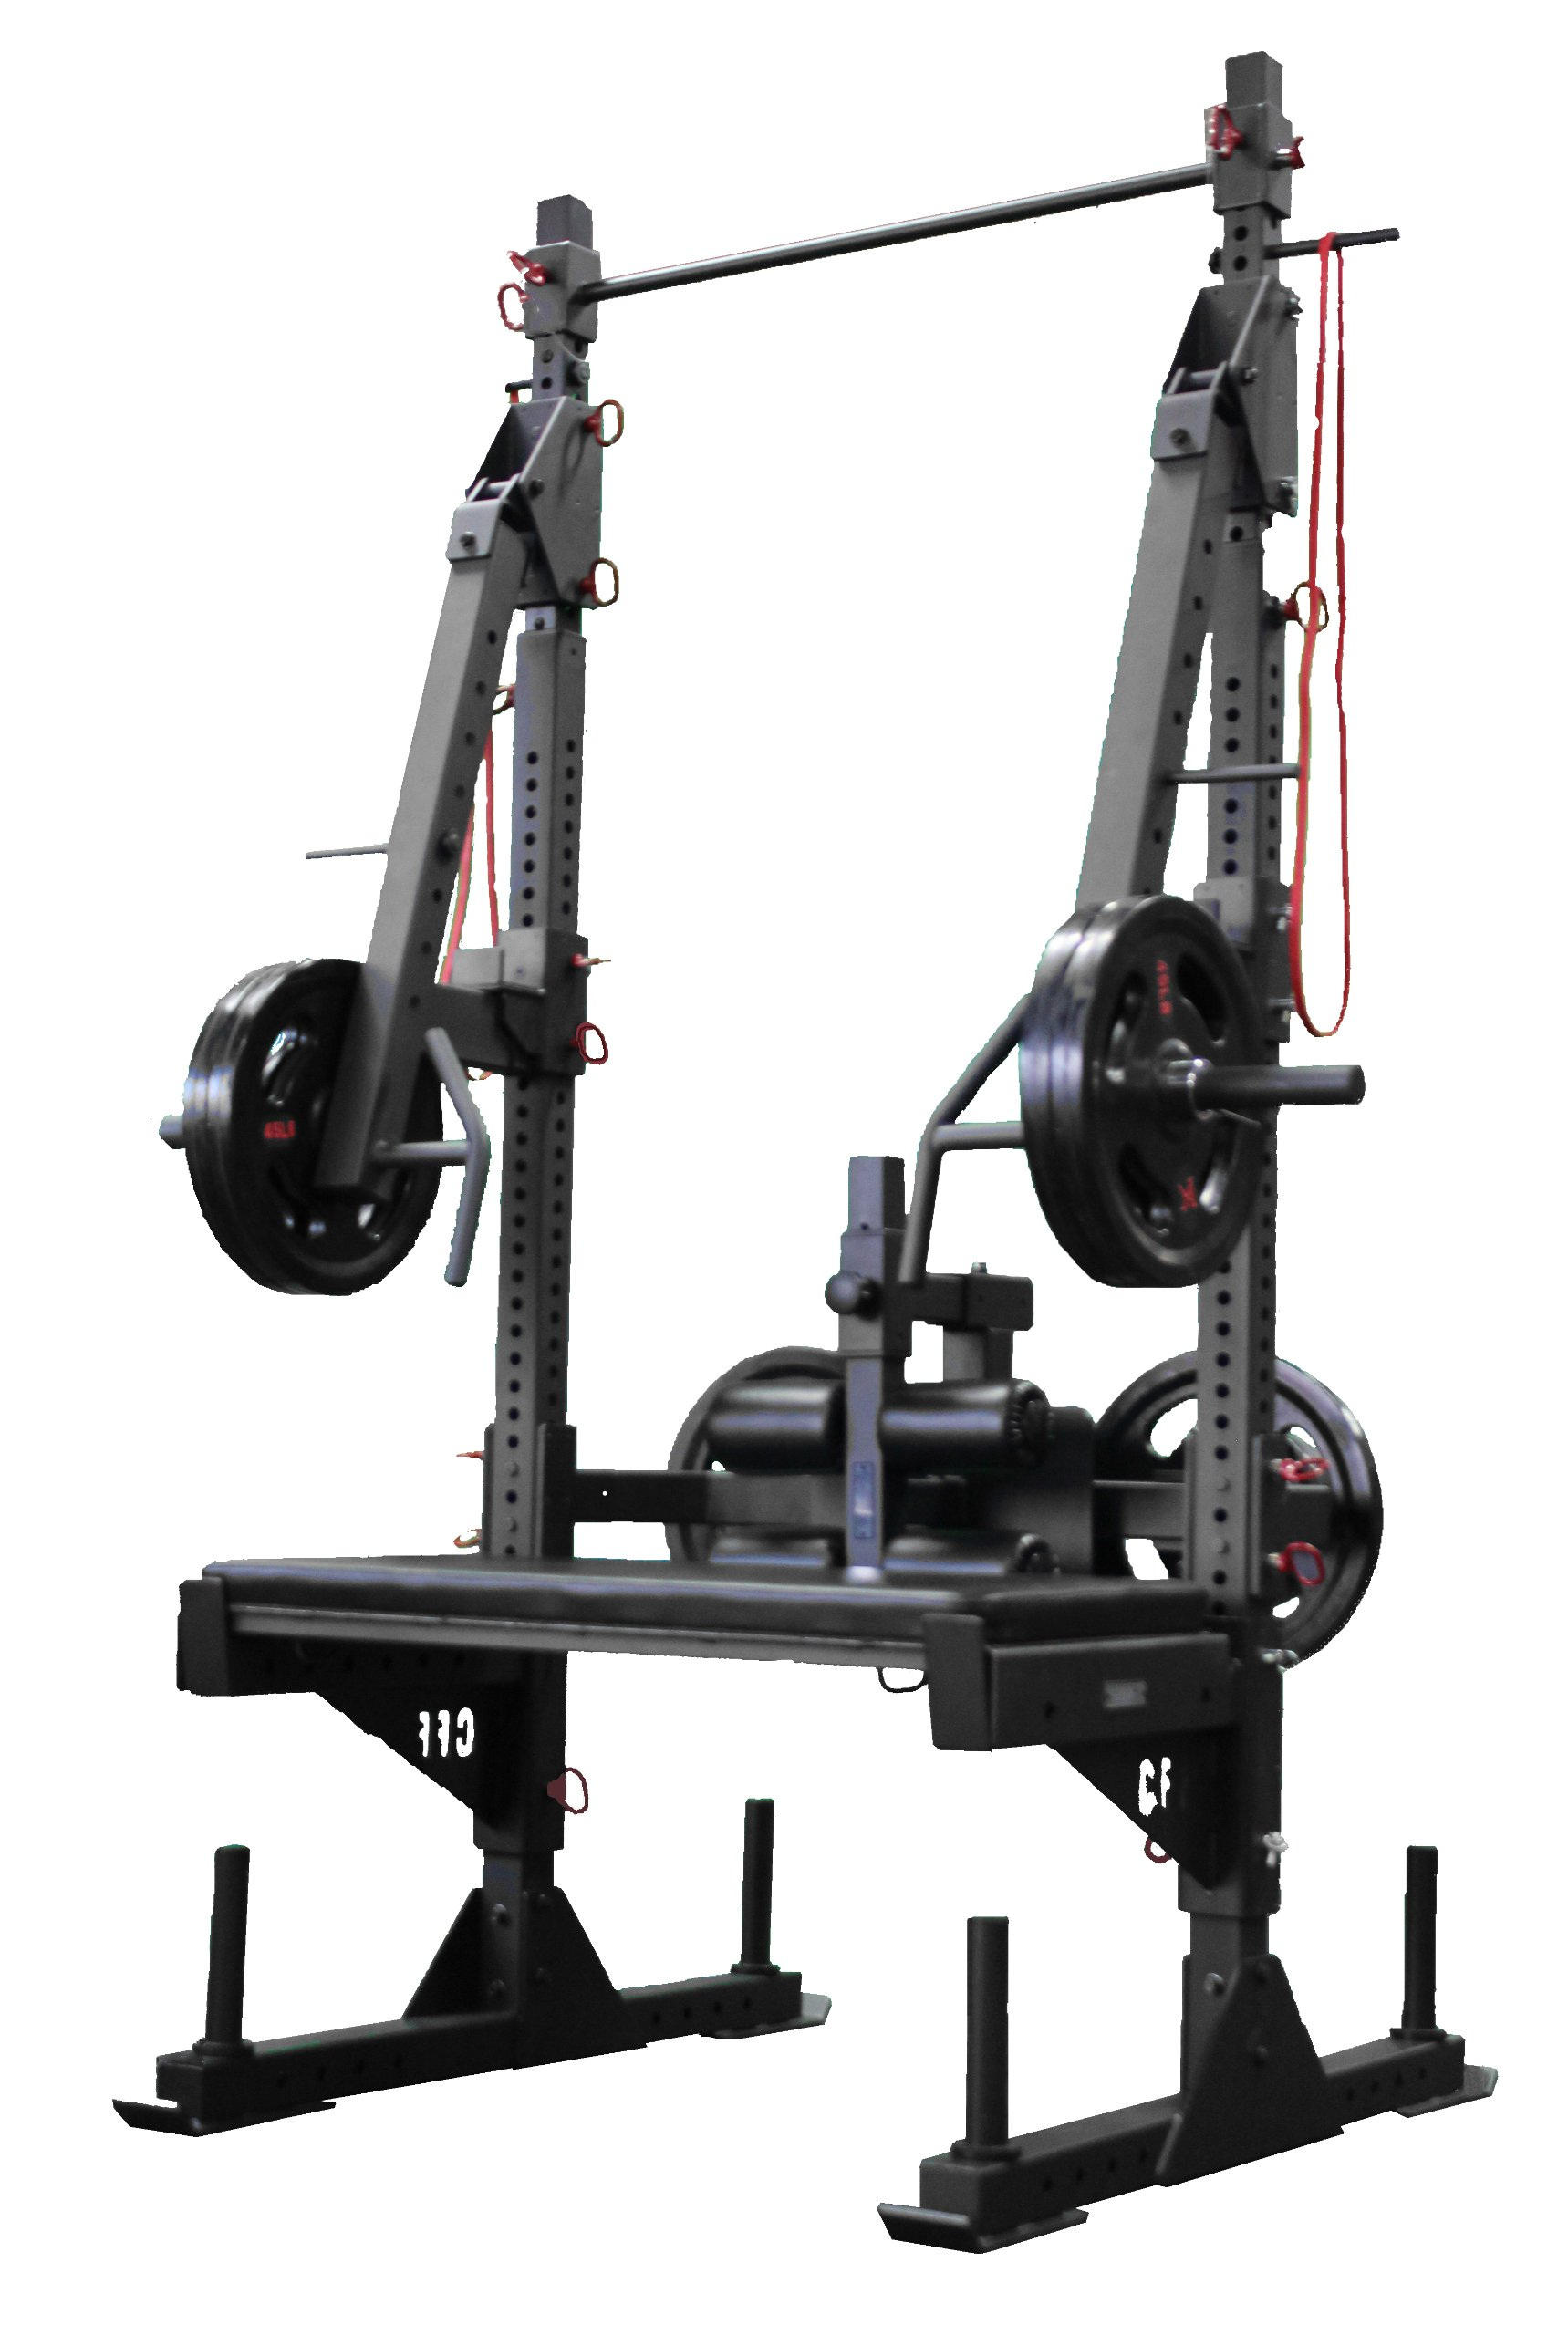 CFF Pro Series Half Rack - ''The Beast'' - Great for Cross Training, MMA, Boxing, Personal Training